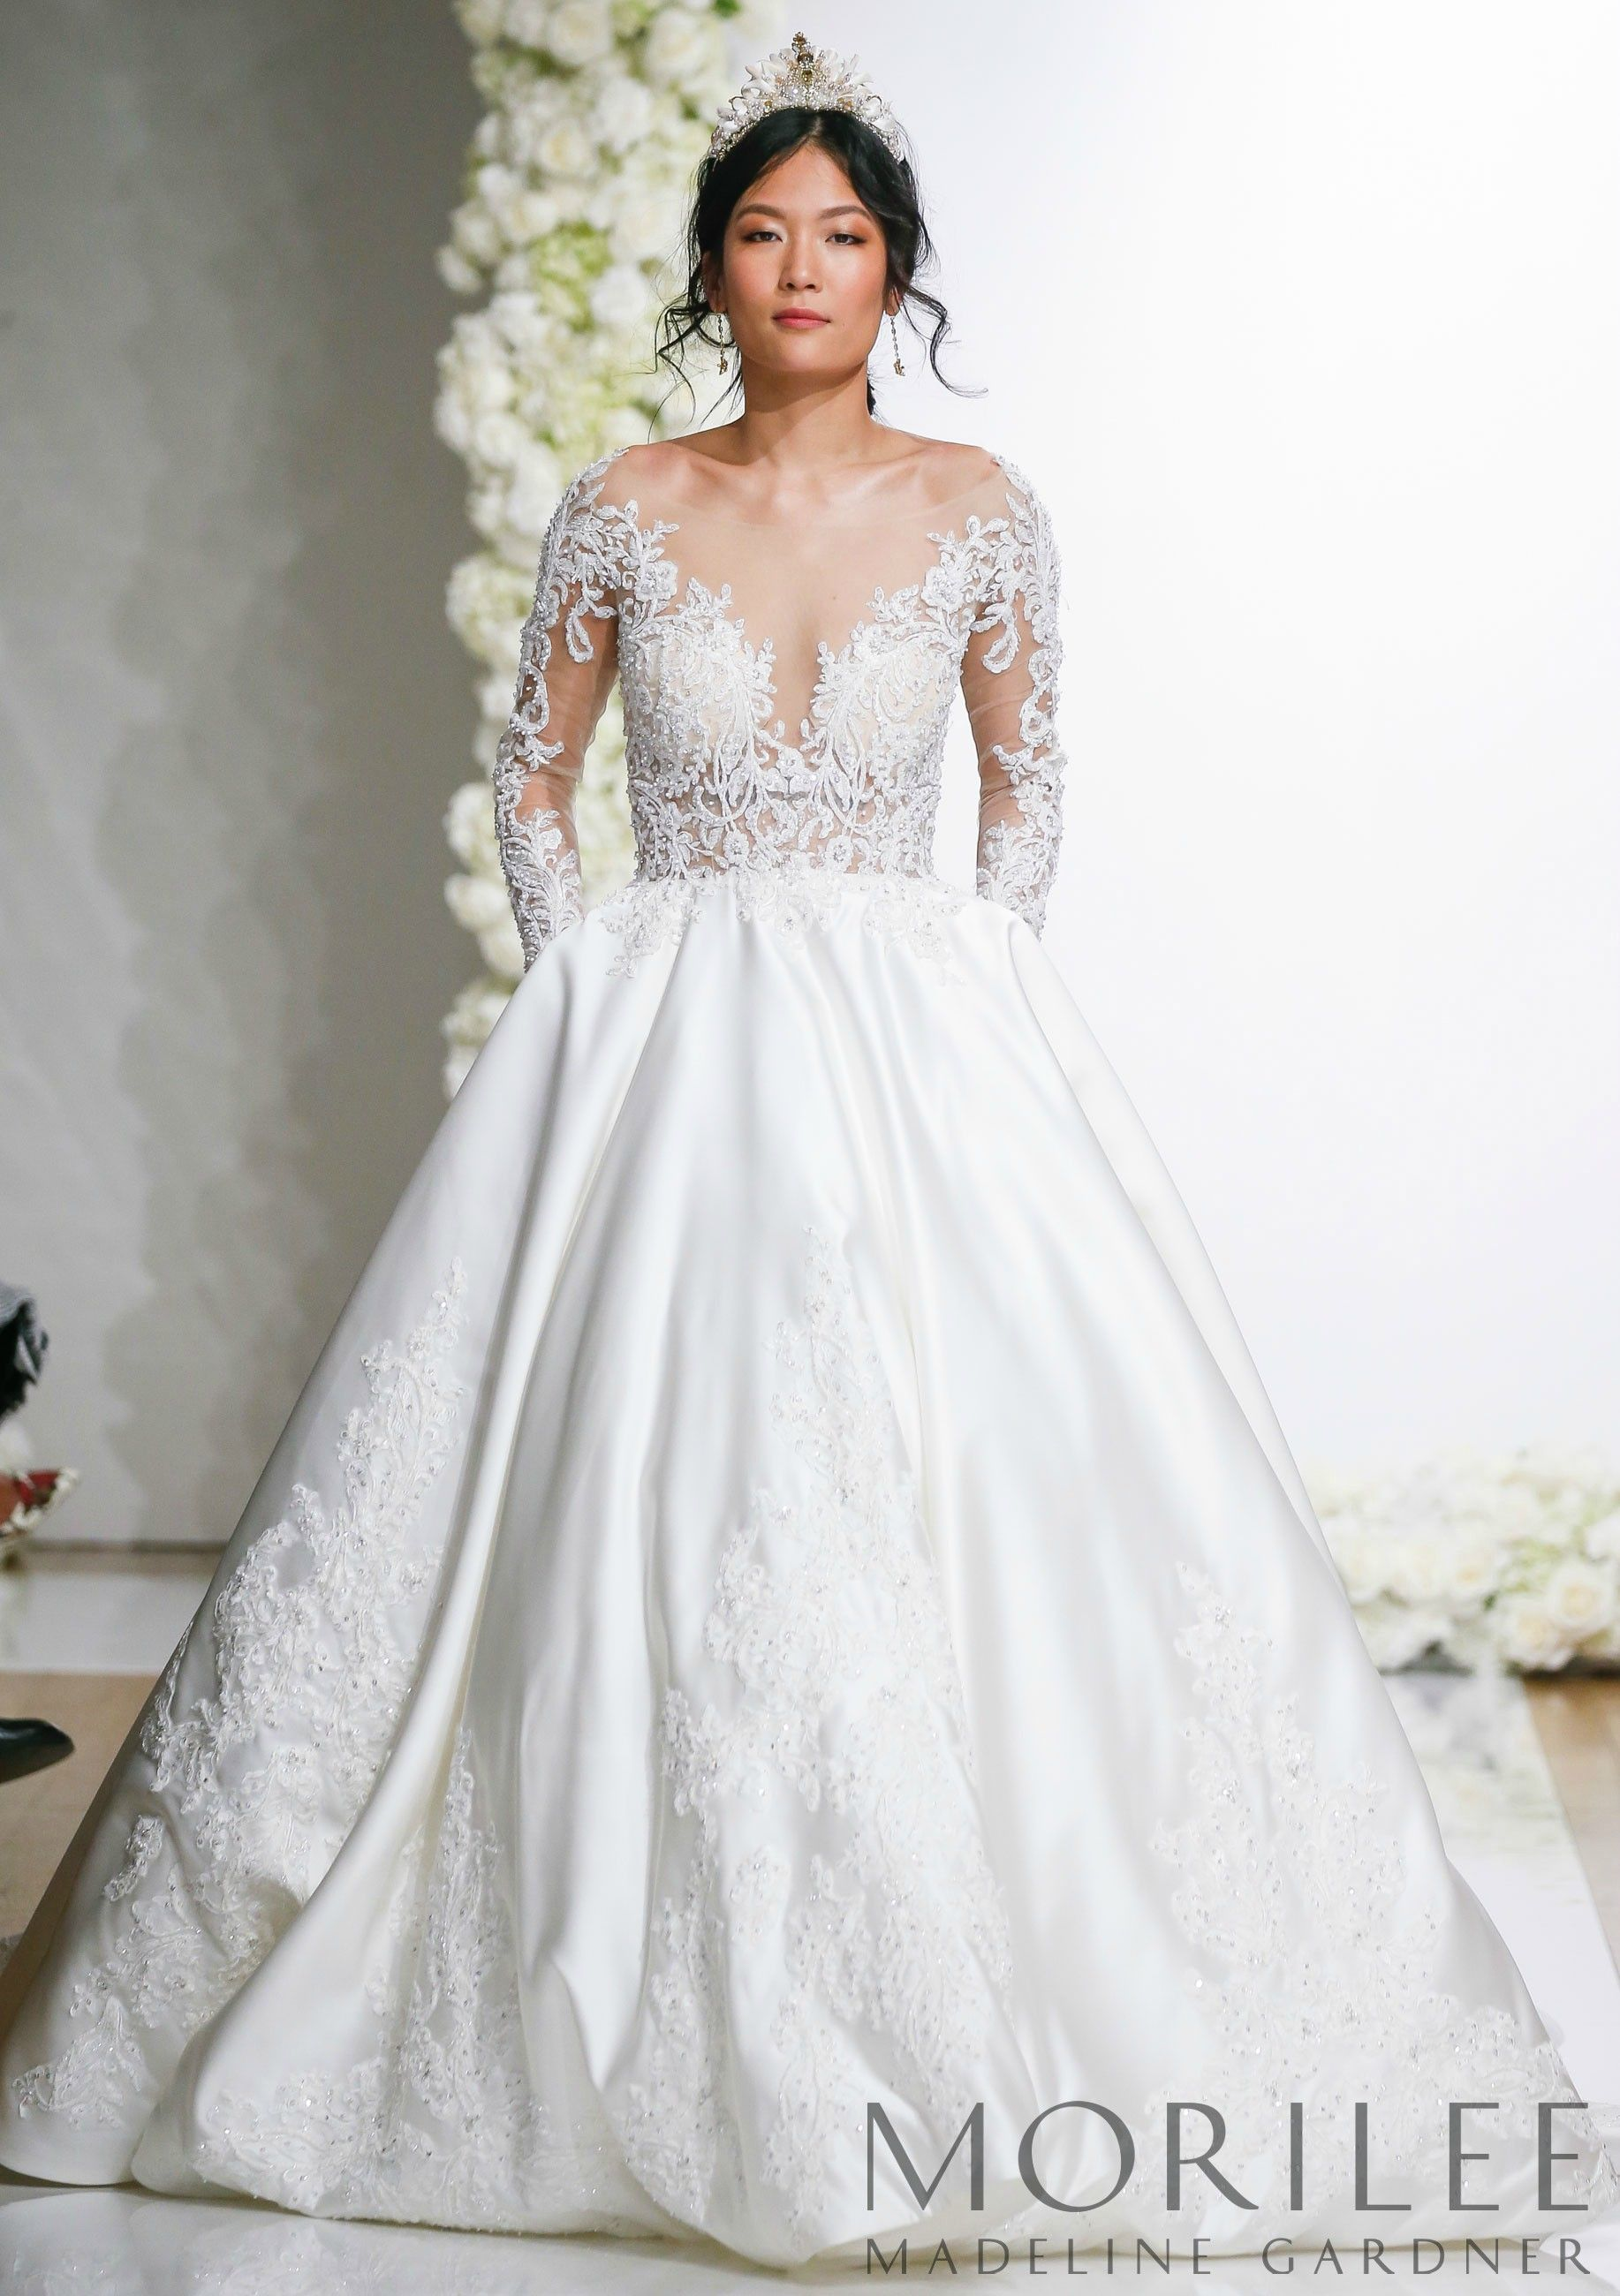 593d34301589 Morilee | Madeline Gardner, Lourdette Style 8297 | Classic Long Sleeve  Duchess Satin Ballgown Featuring an Intricately Beaded and Embroidered Lace  and Net ...